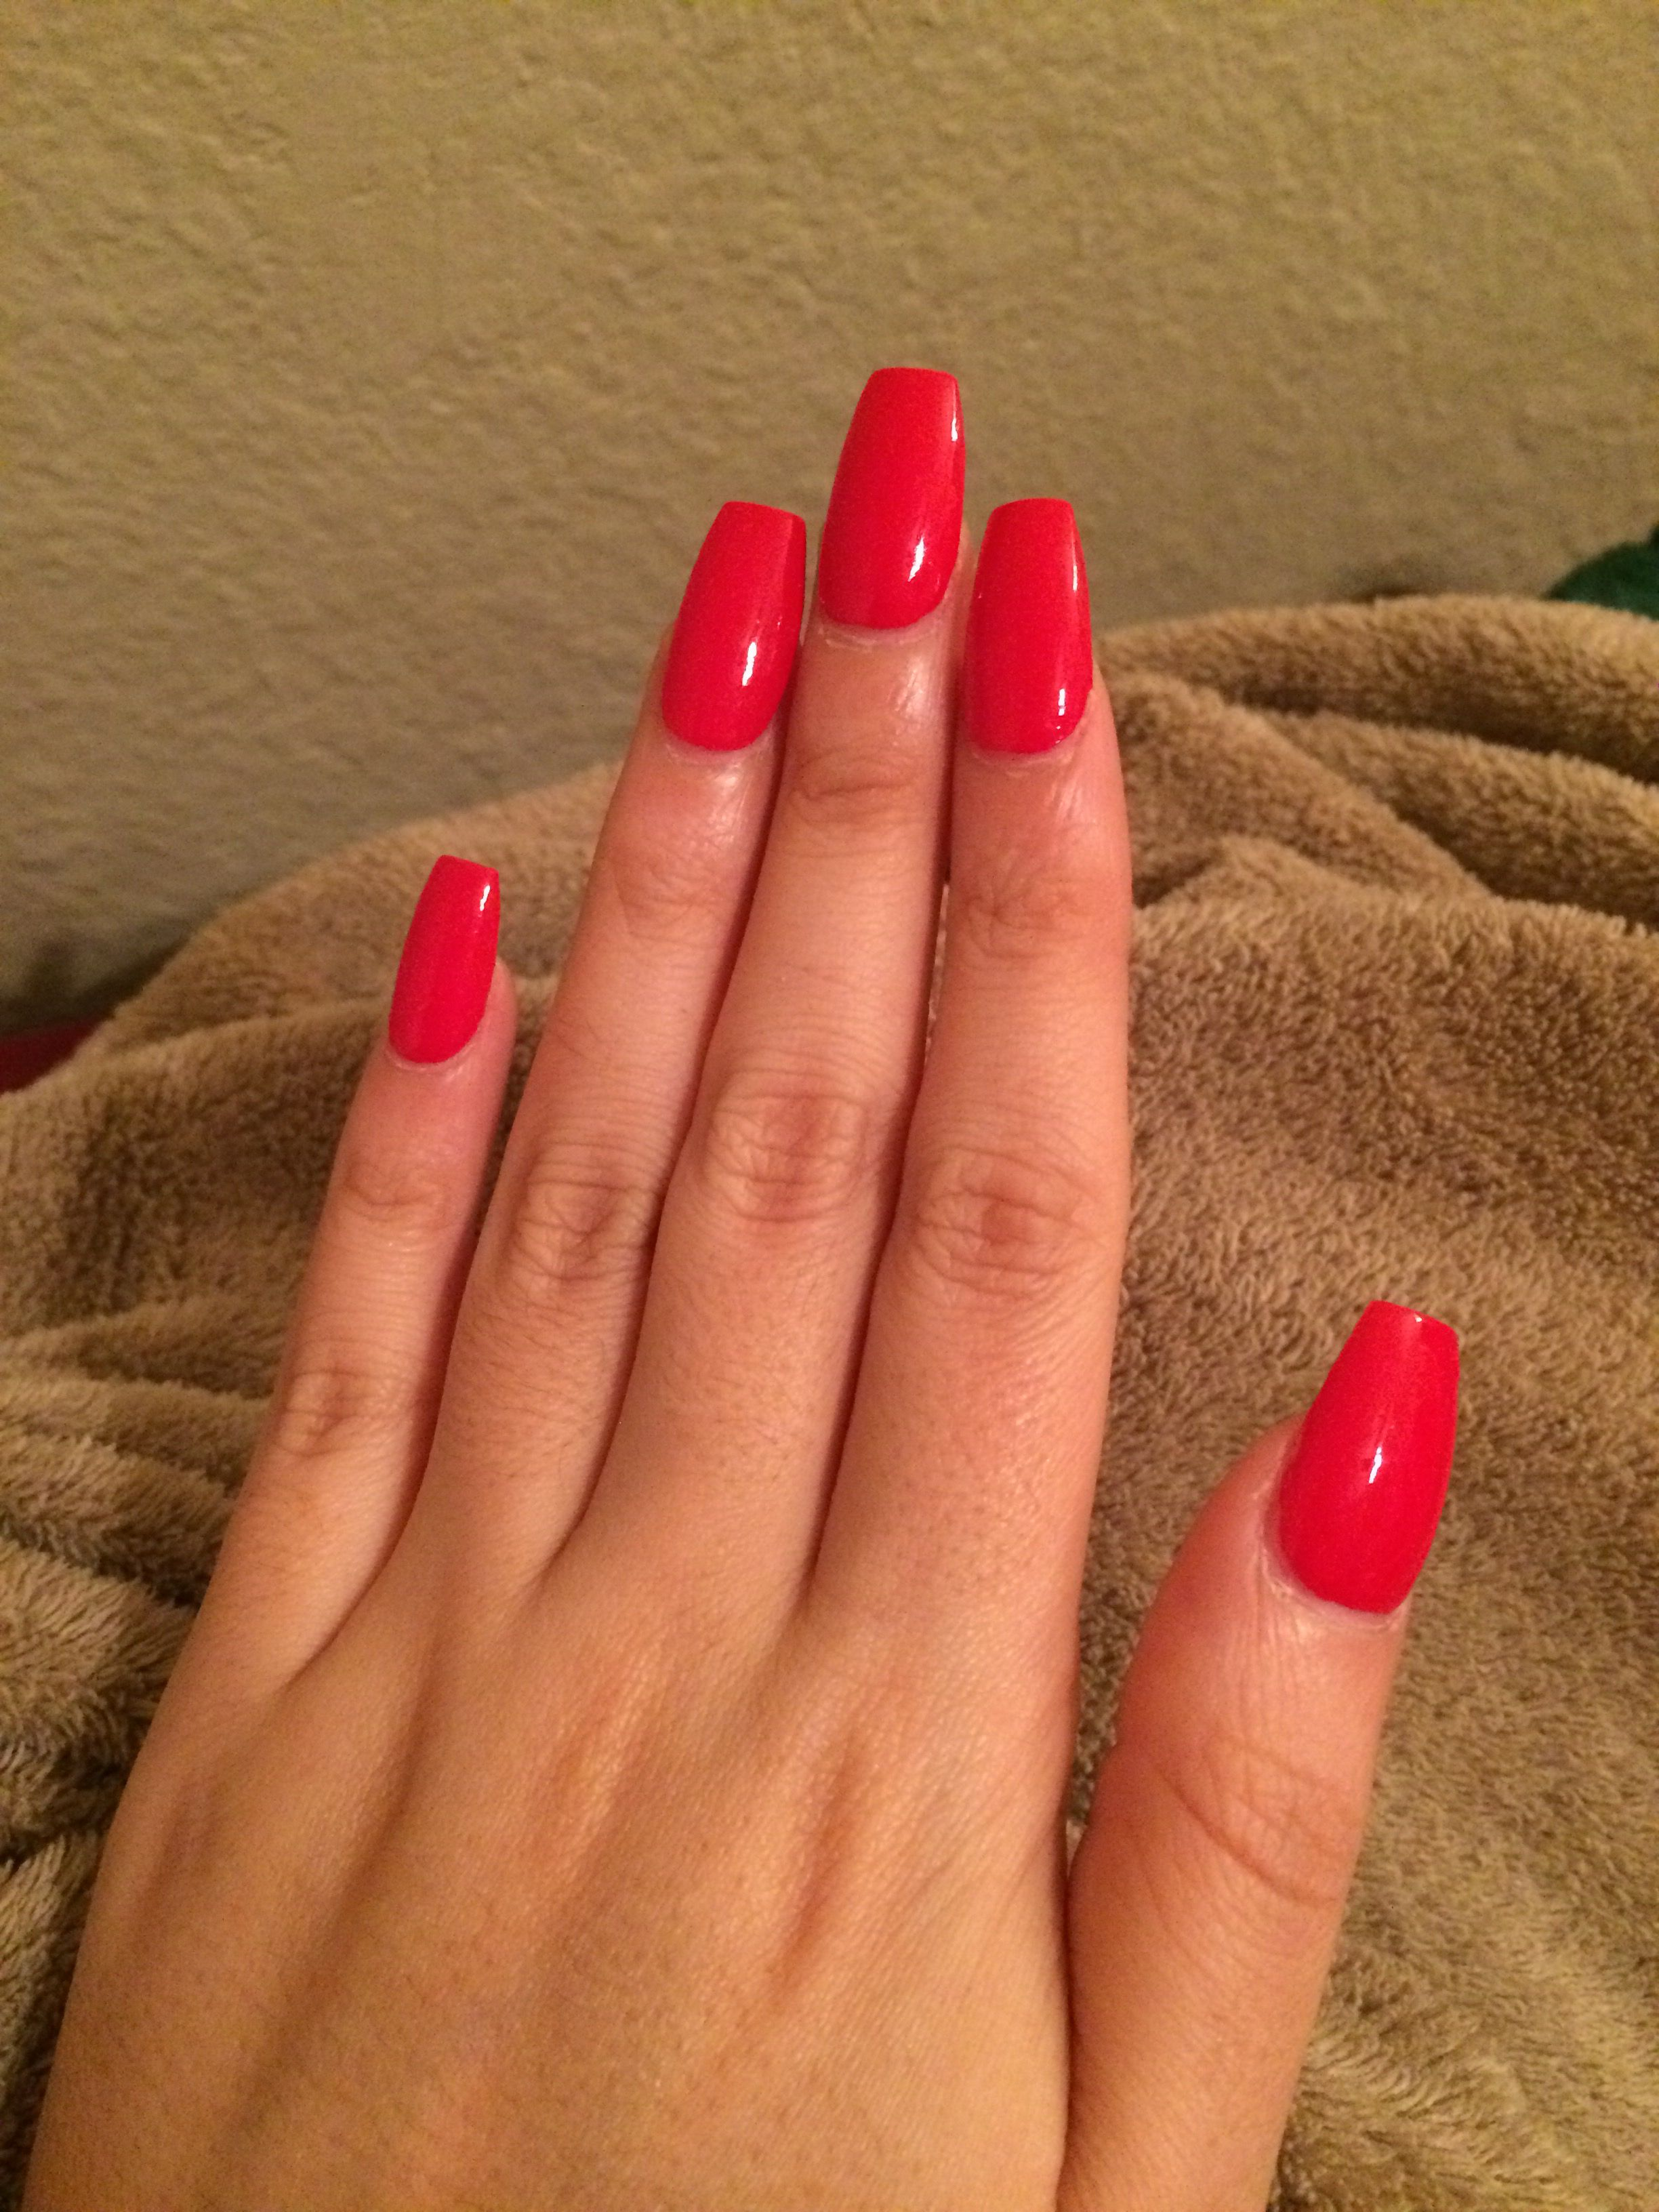 red acrylic coffin nails. nail